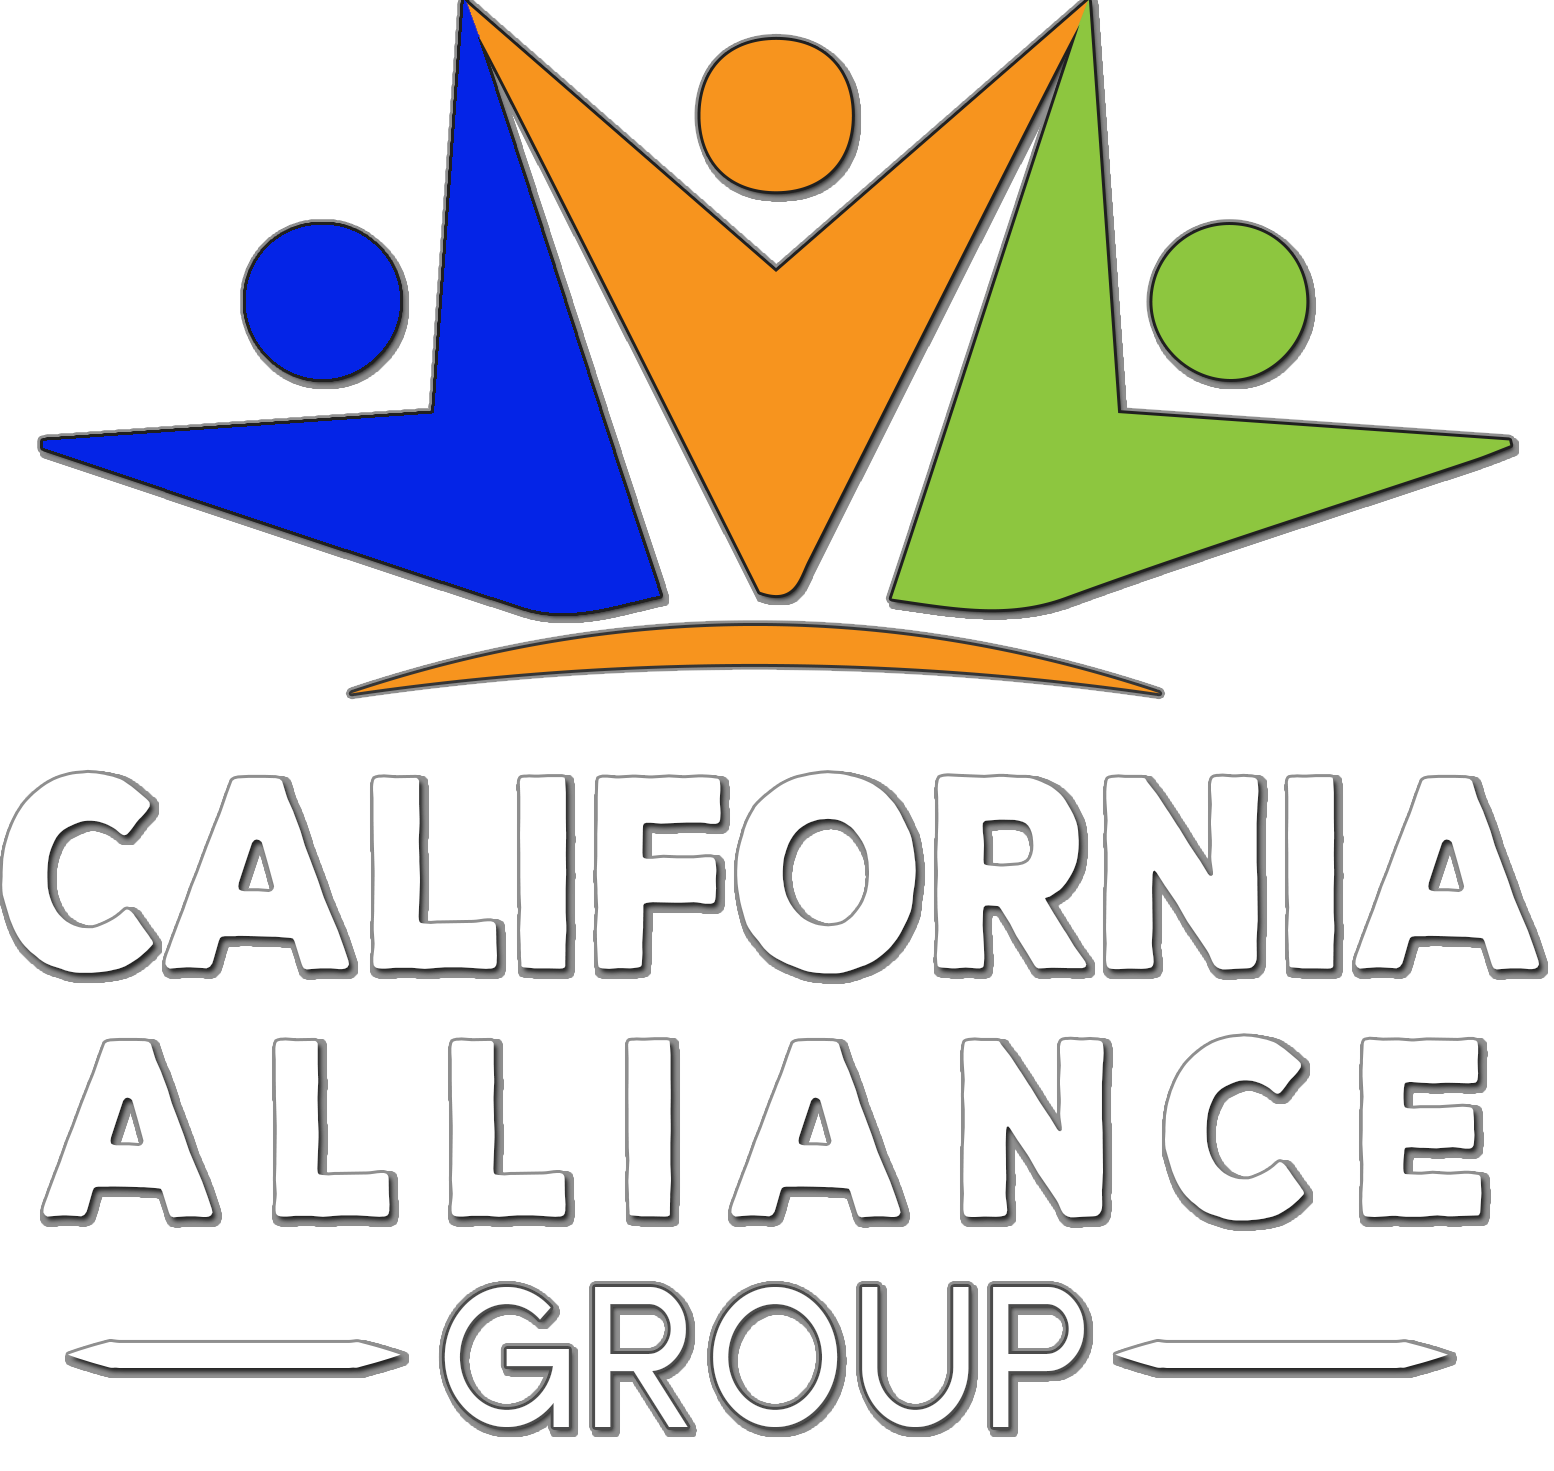 California Alliance Group